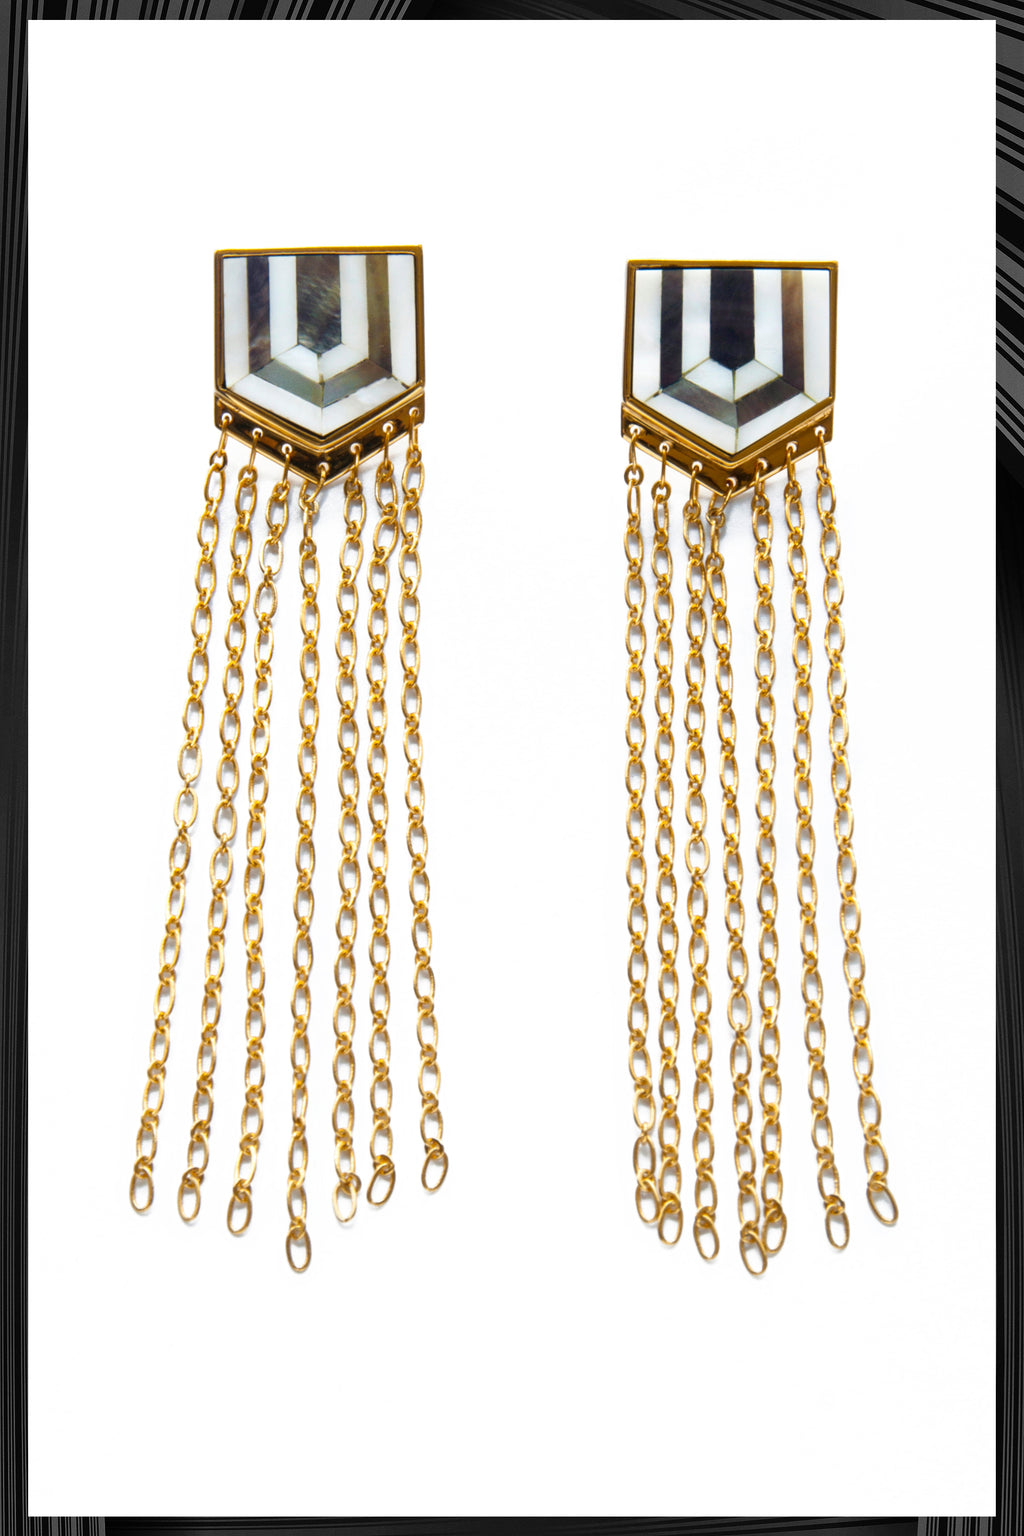 Malaya Earrings | Free Delivery - 3-4 Weeks Shipping